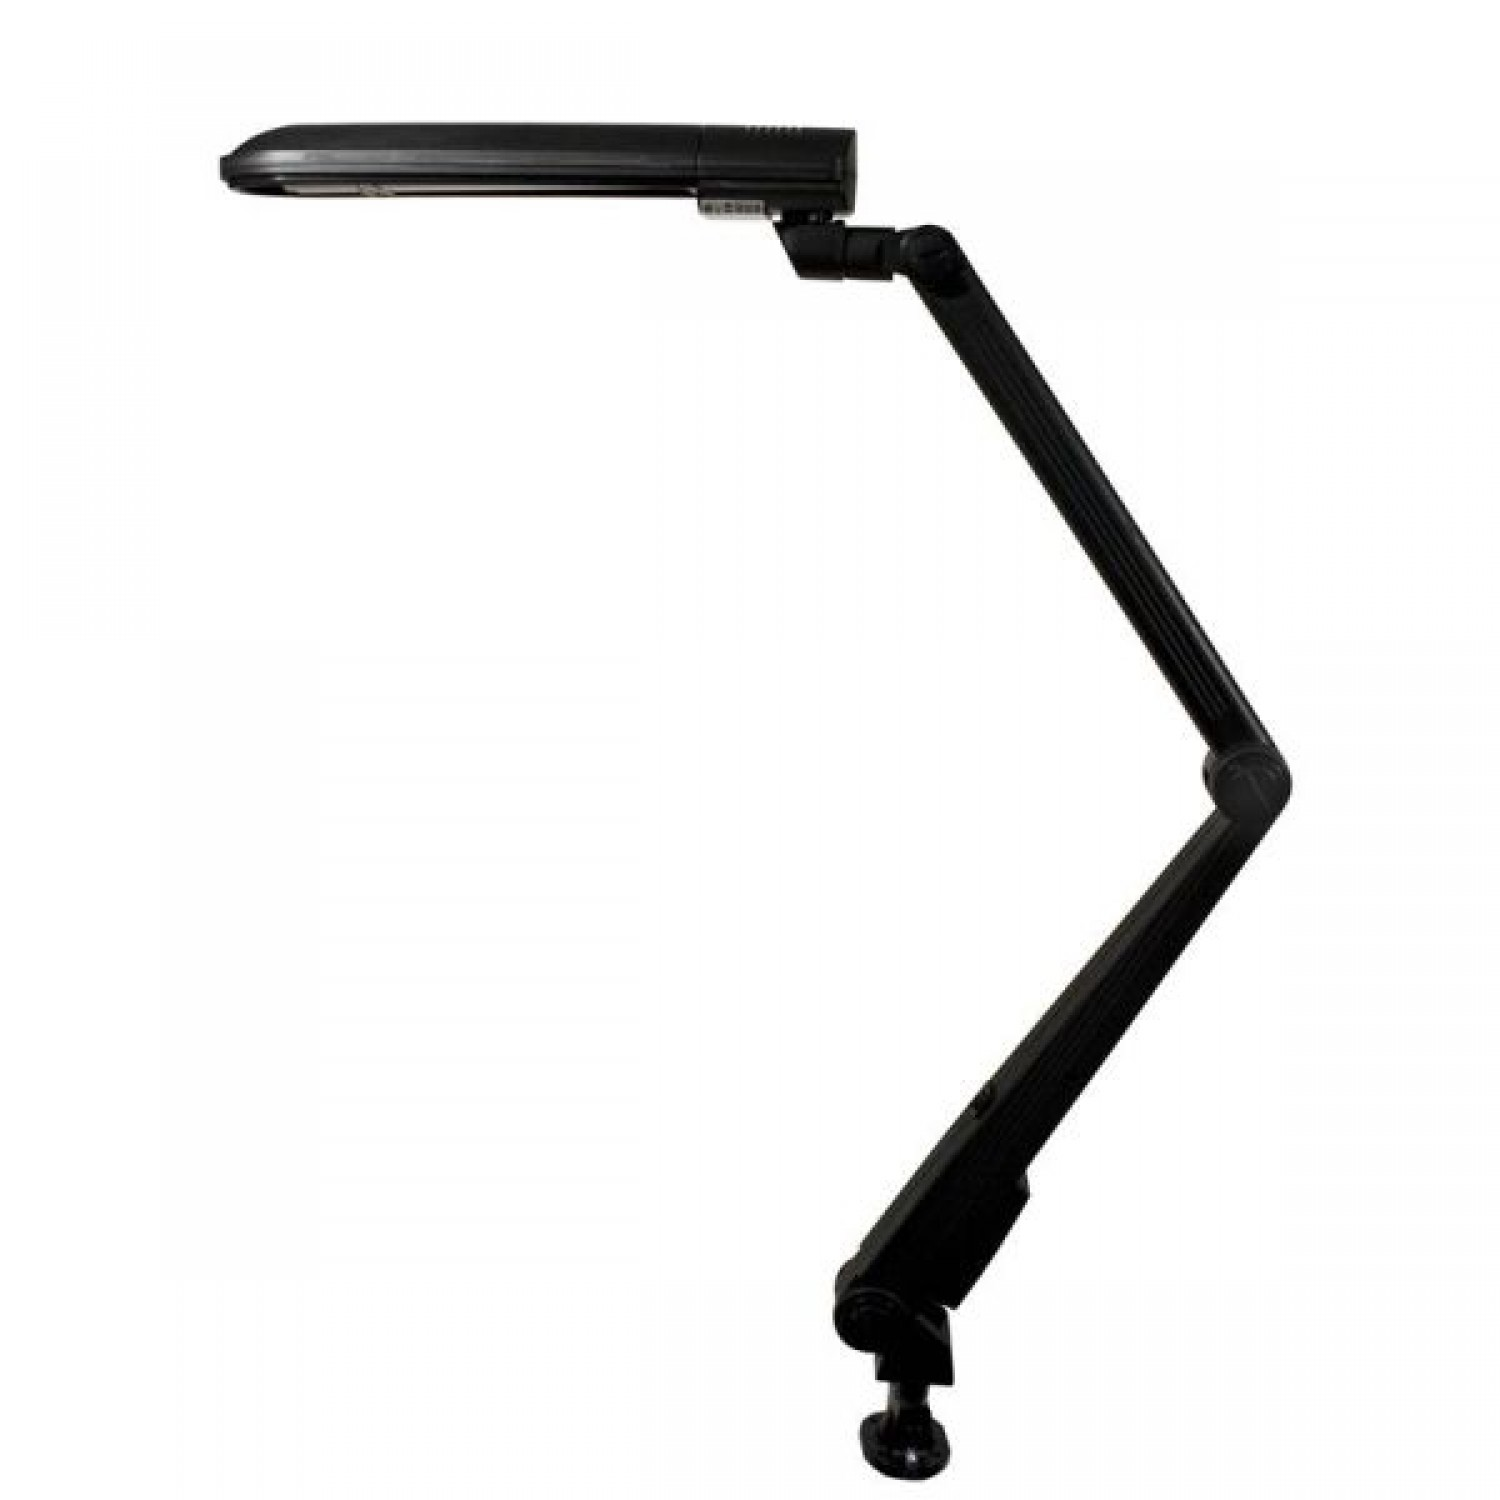 Arm Lamp Ledu Convertible Energy Efficient Long Arm Lamp Includes 18 Watt Fluorescent Bulb Matte Black 28